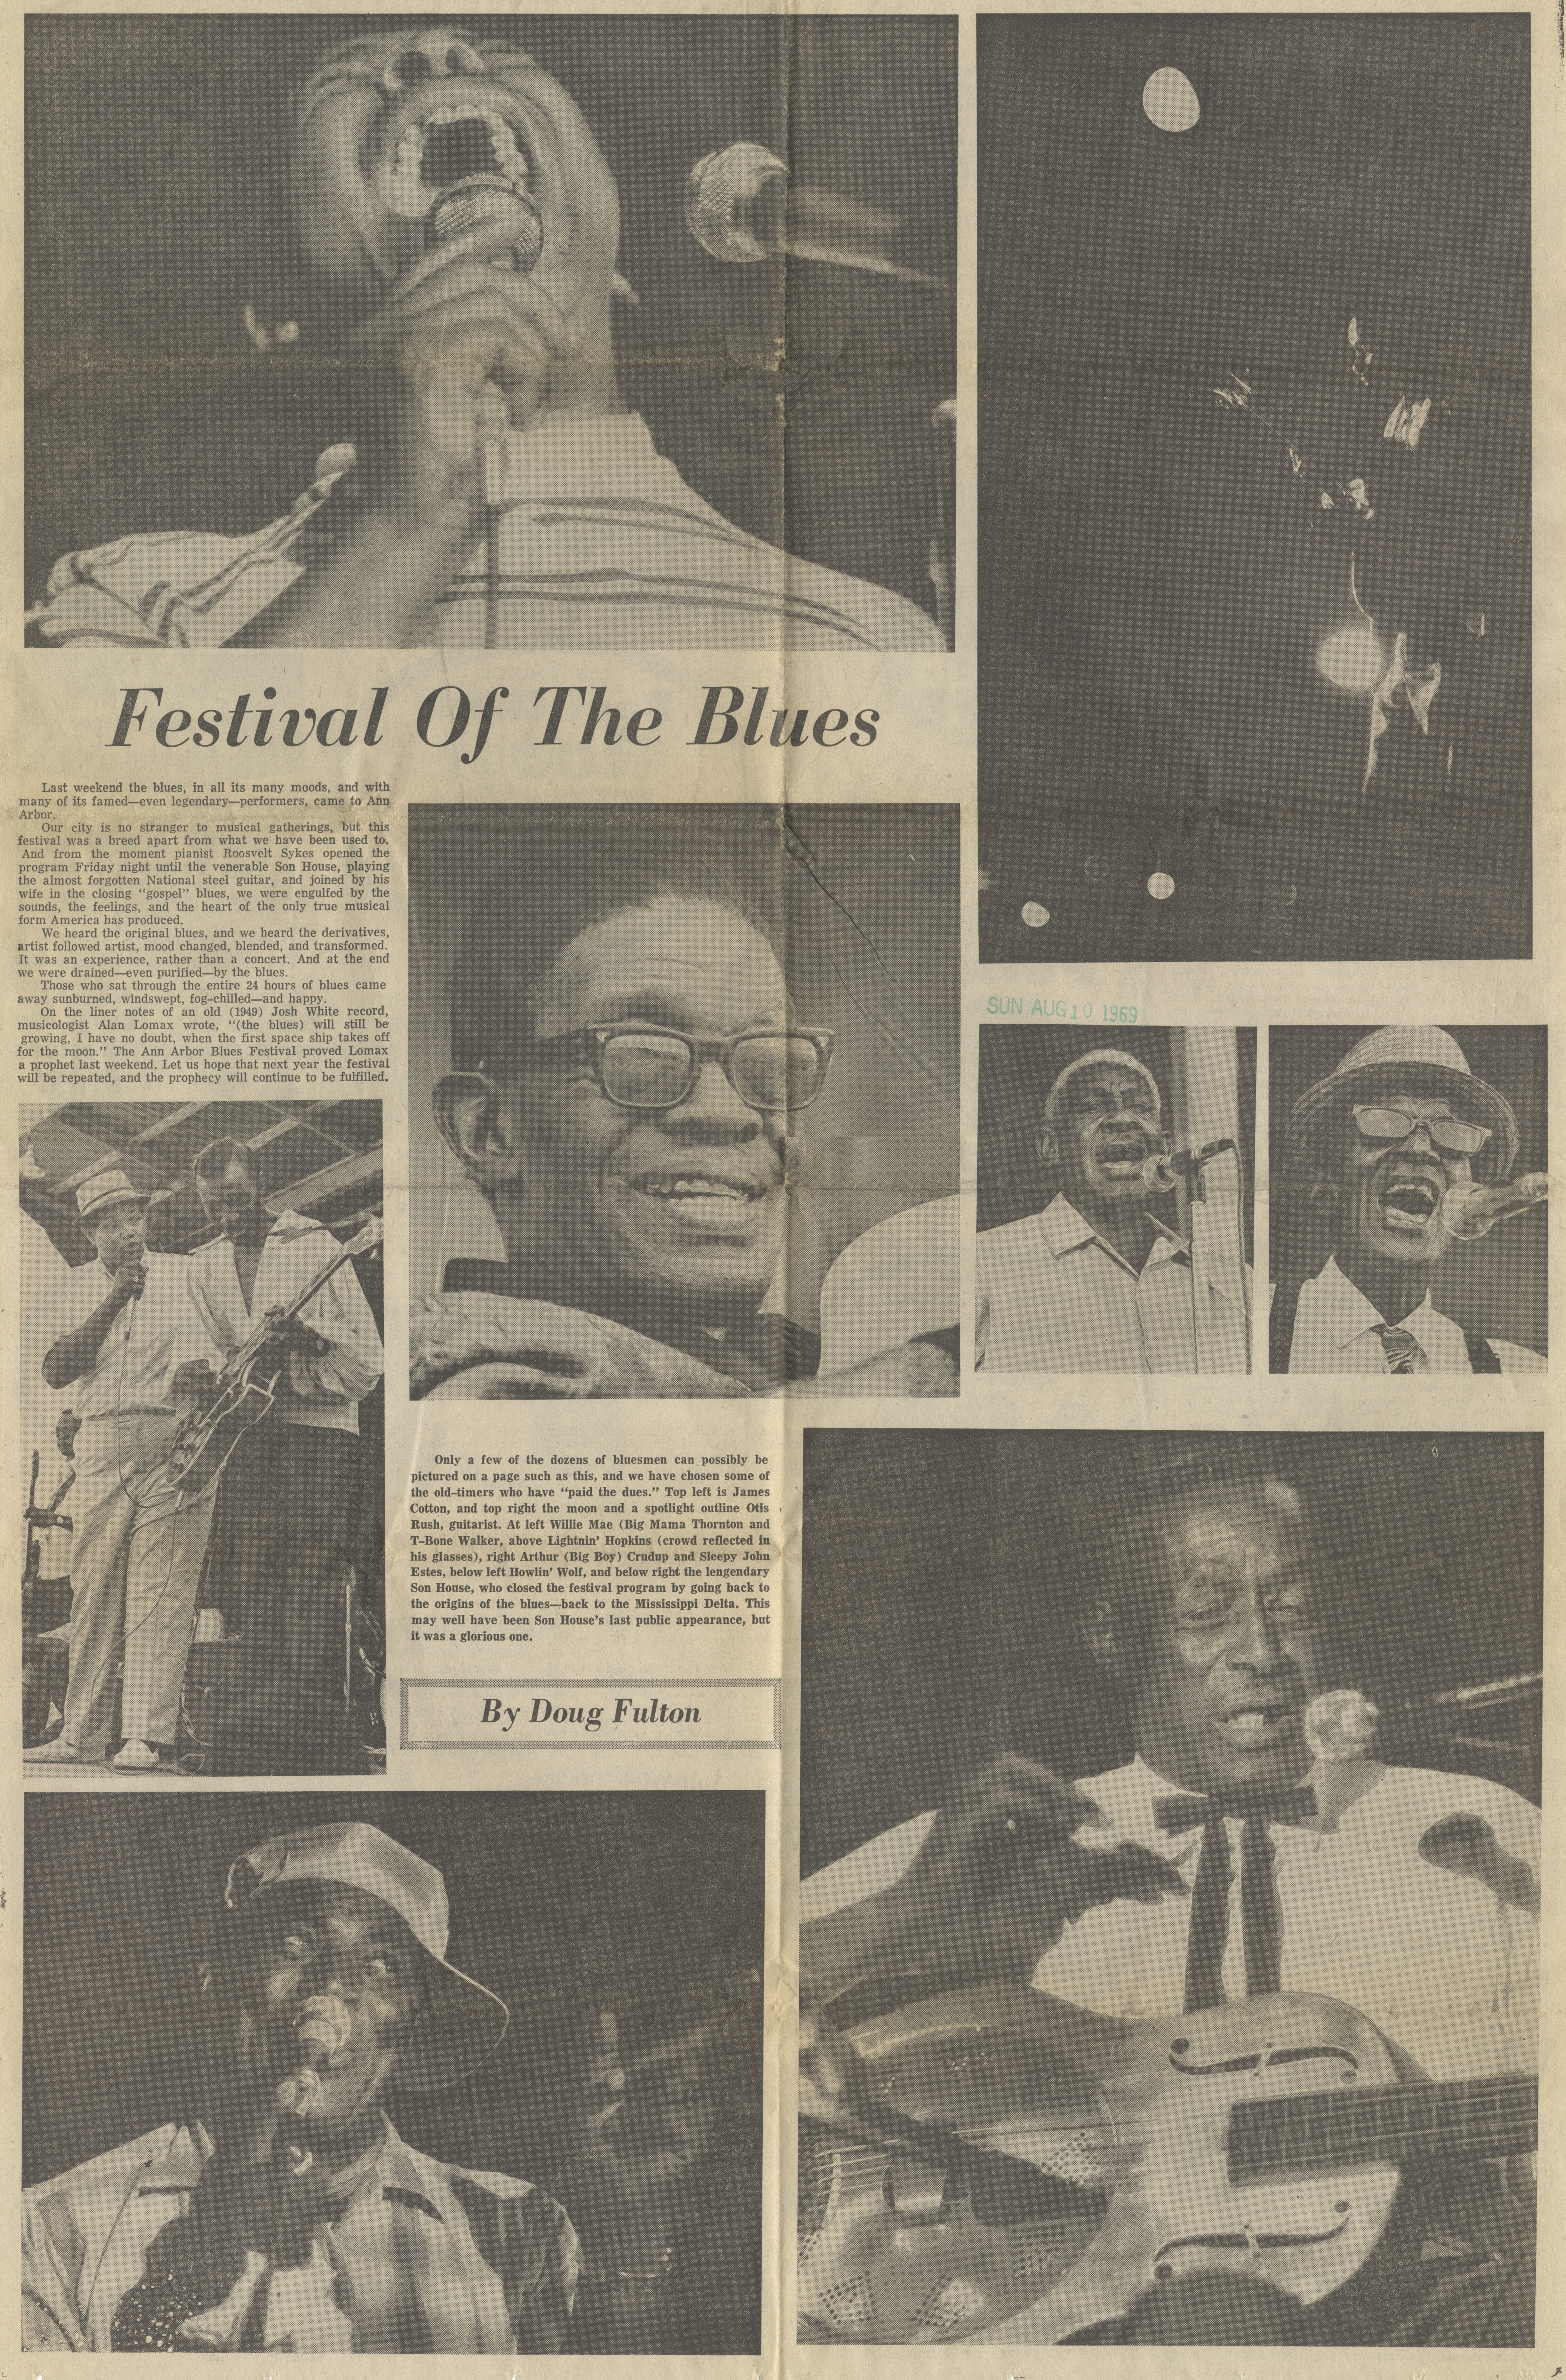 Festival of the Blues image